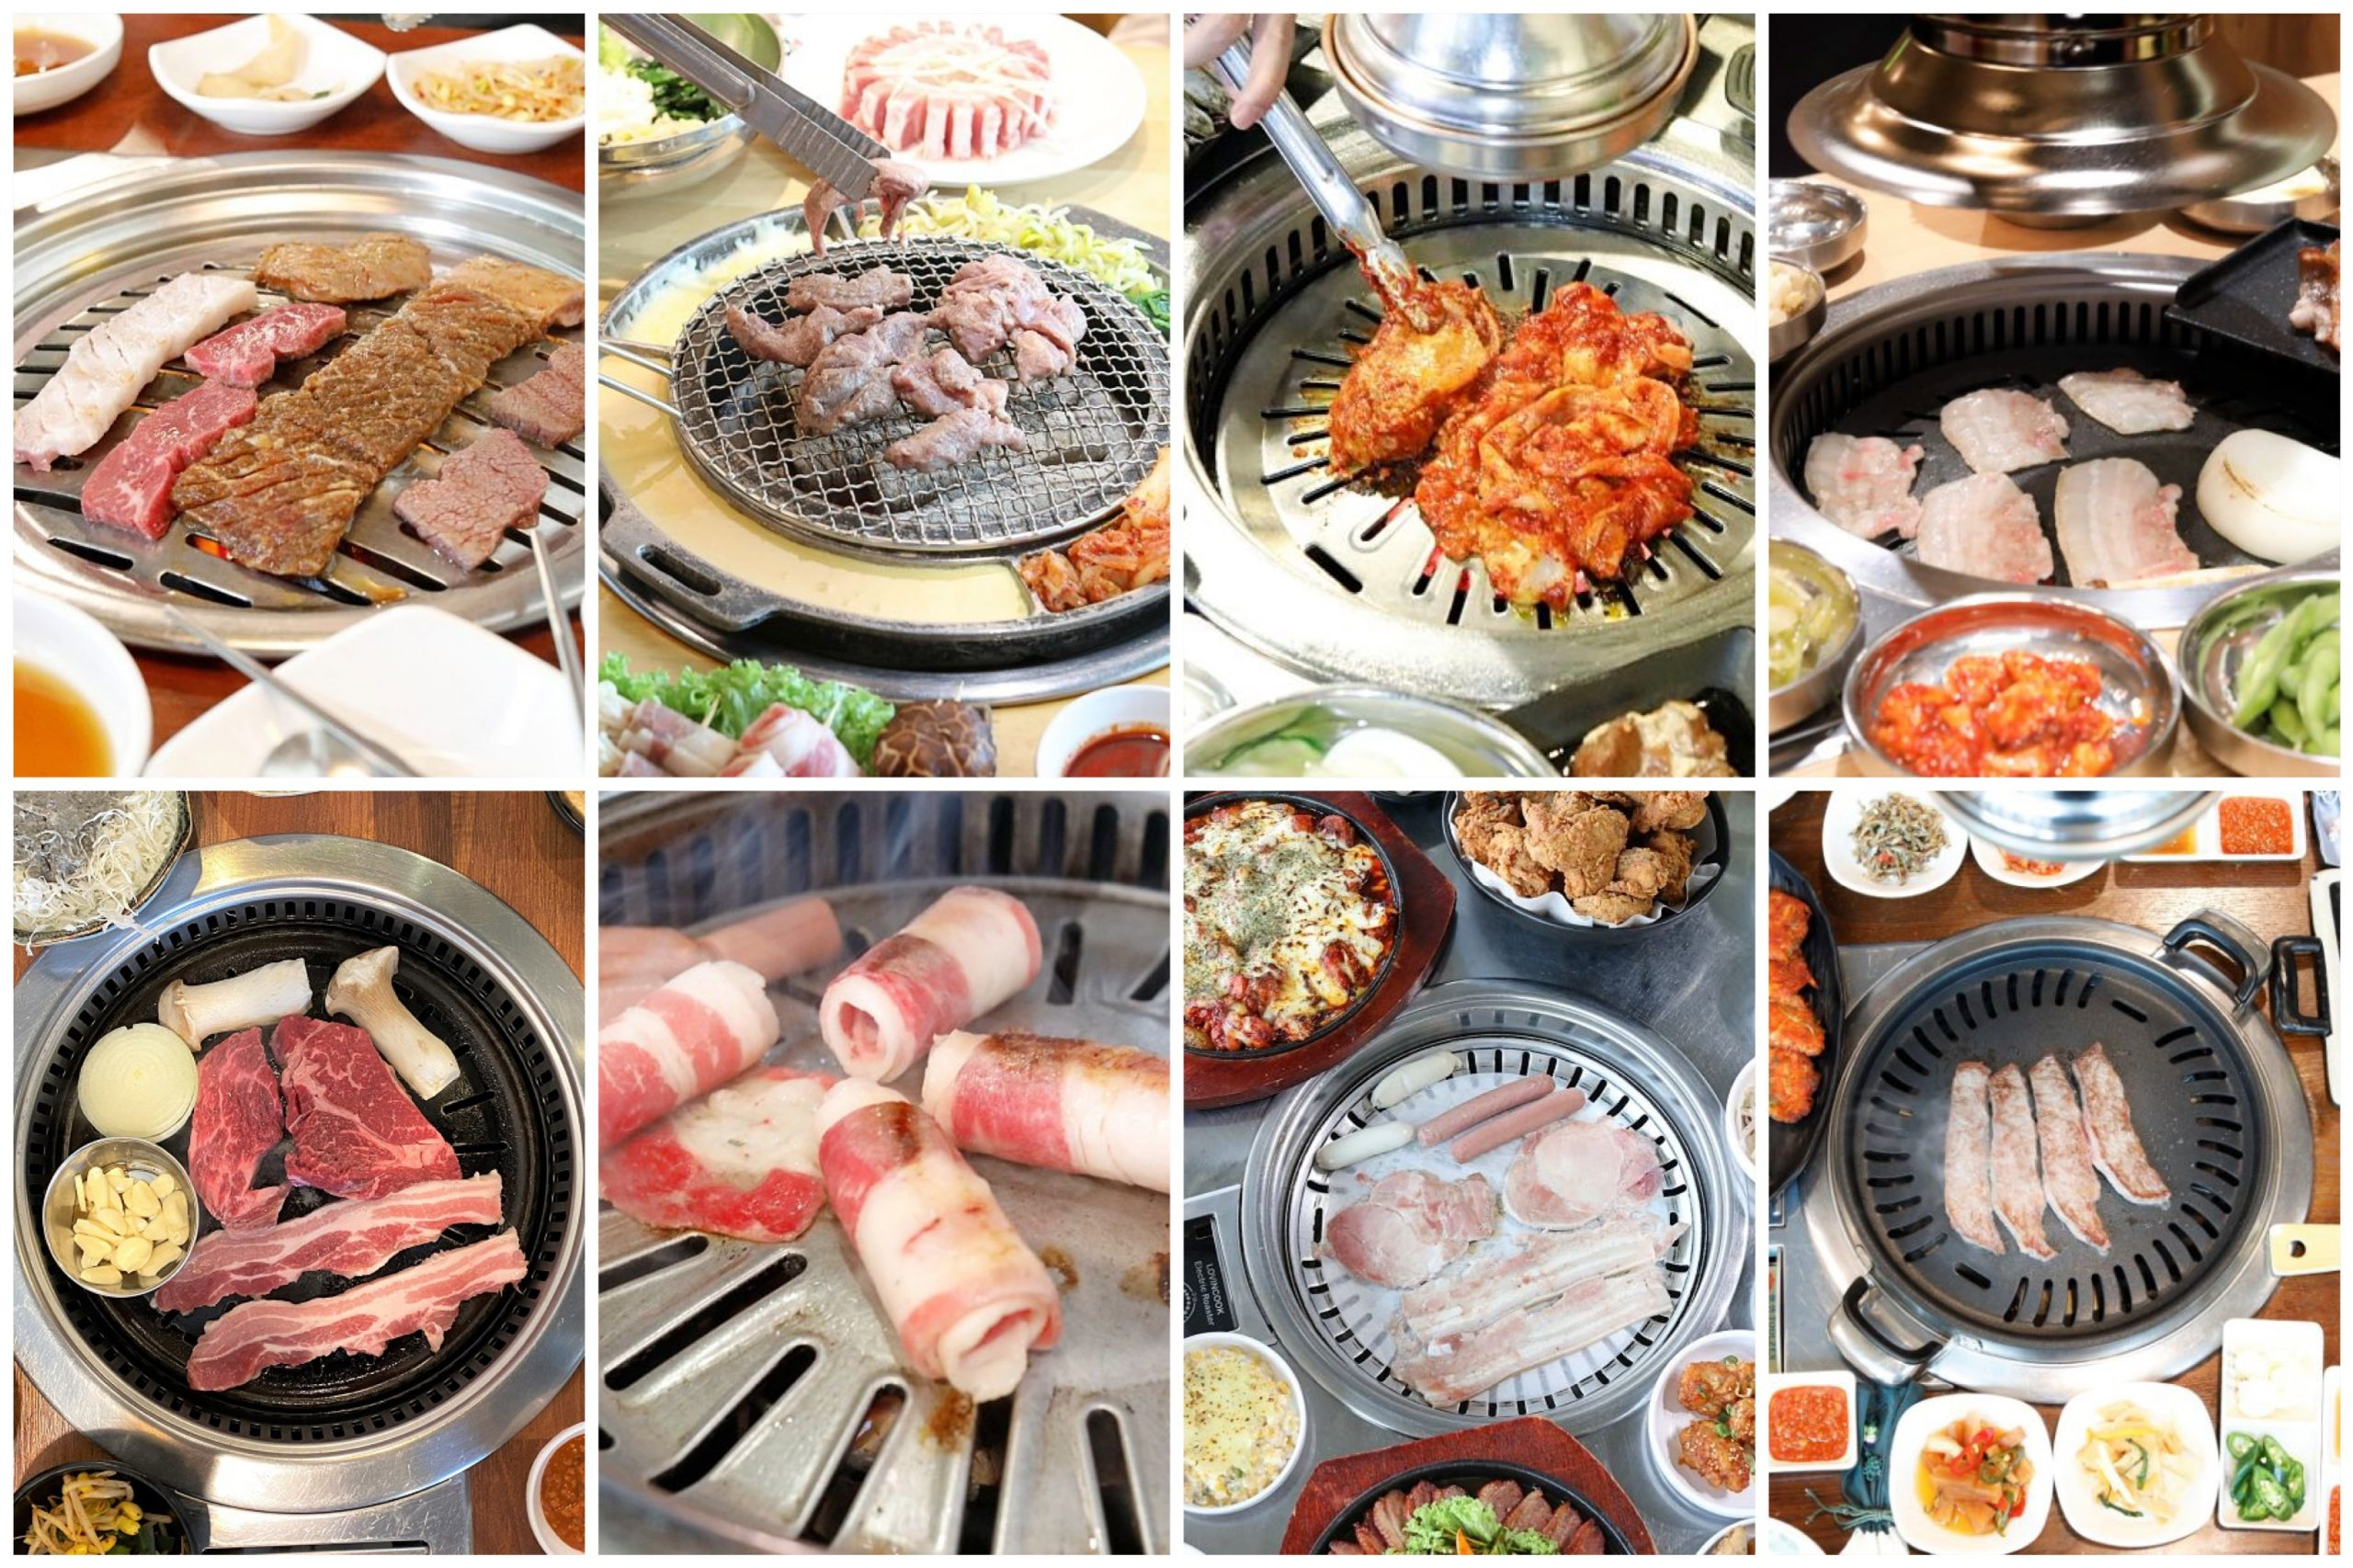 11 Best Korean Bbq In Singapore For Sizzling Succulent Meats From O Bba Bbq Guiga To Supulae Korean Bbq Danielfooddiary Com